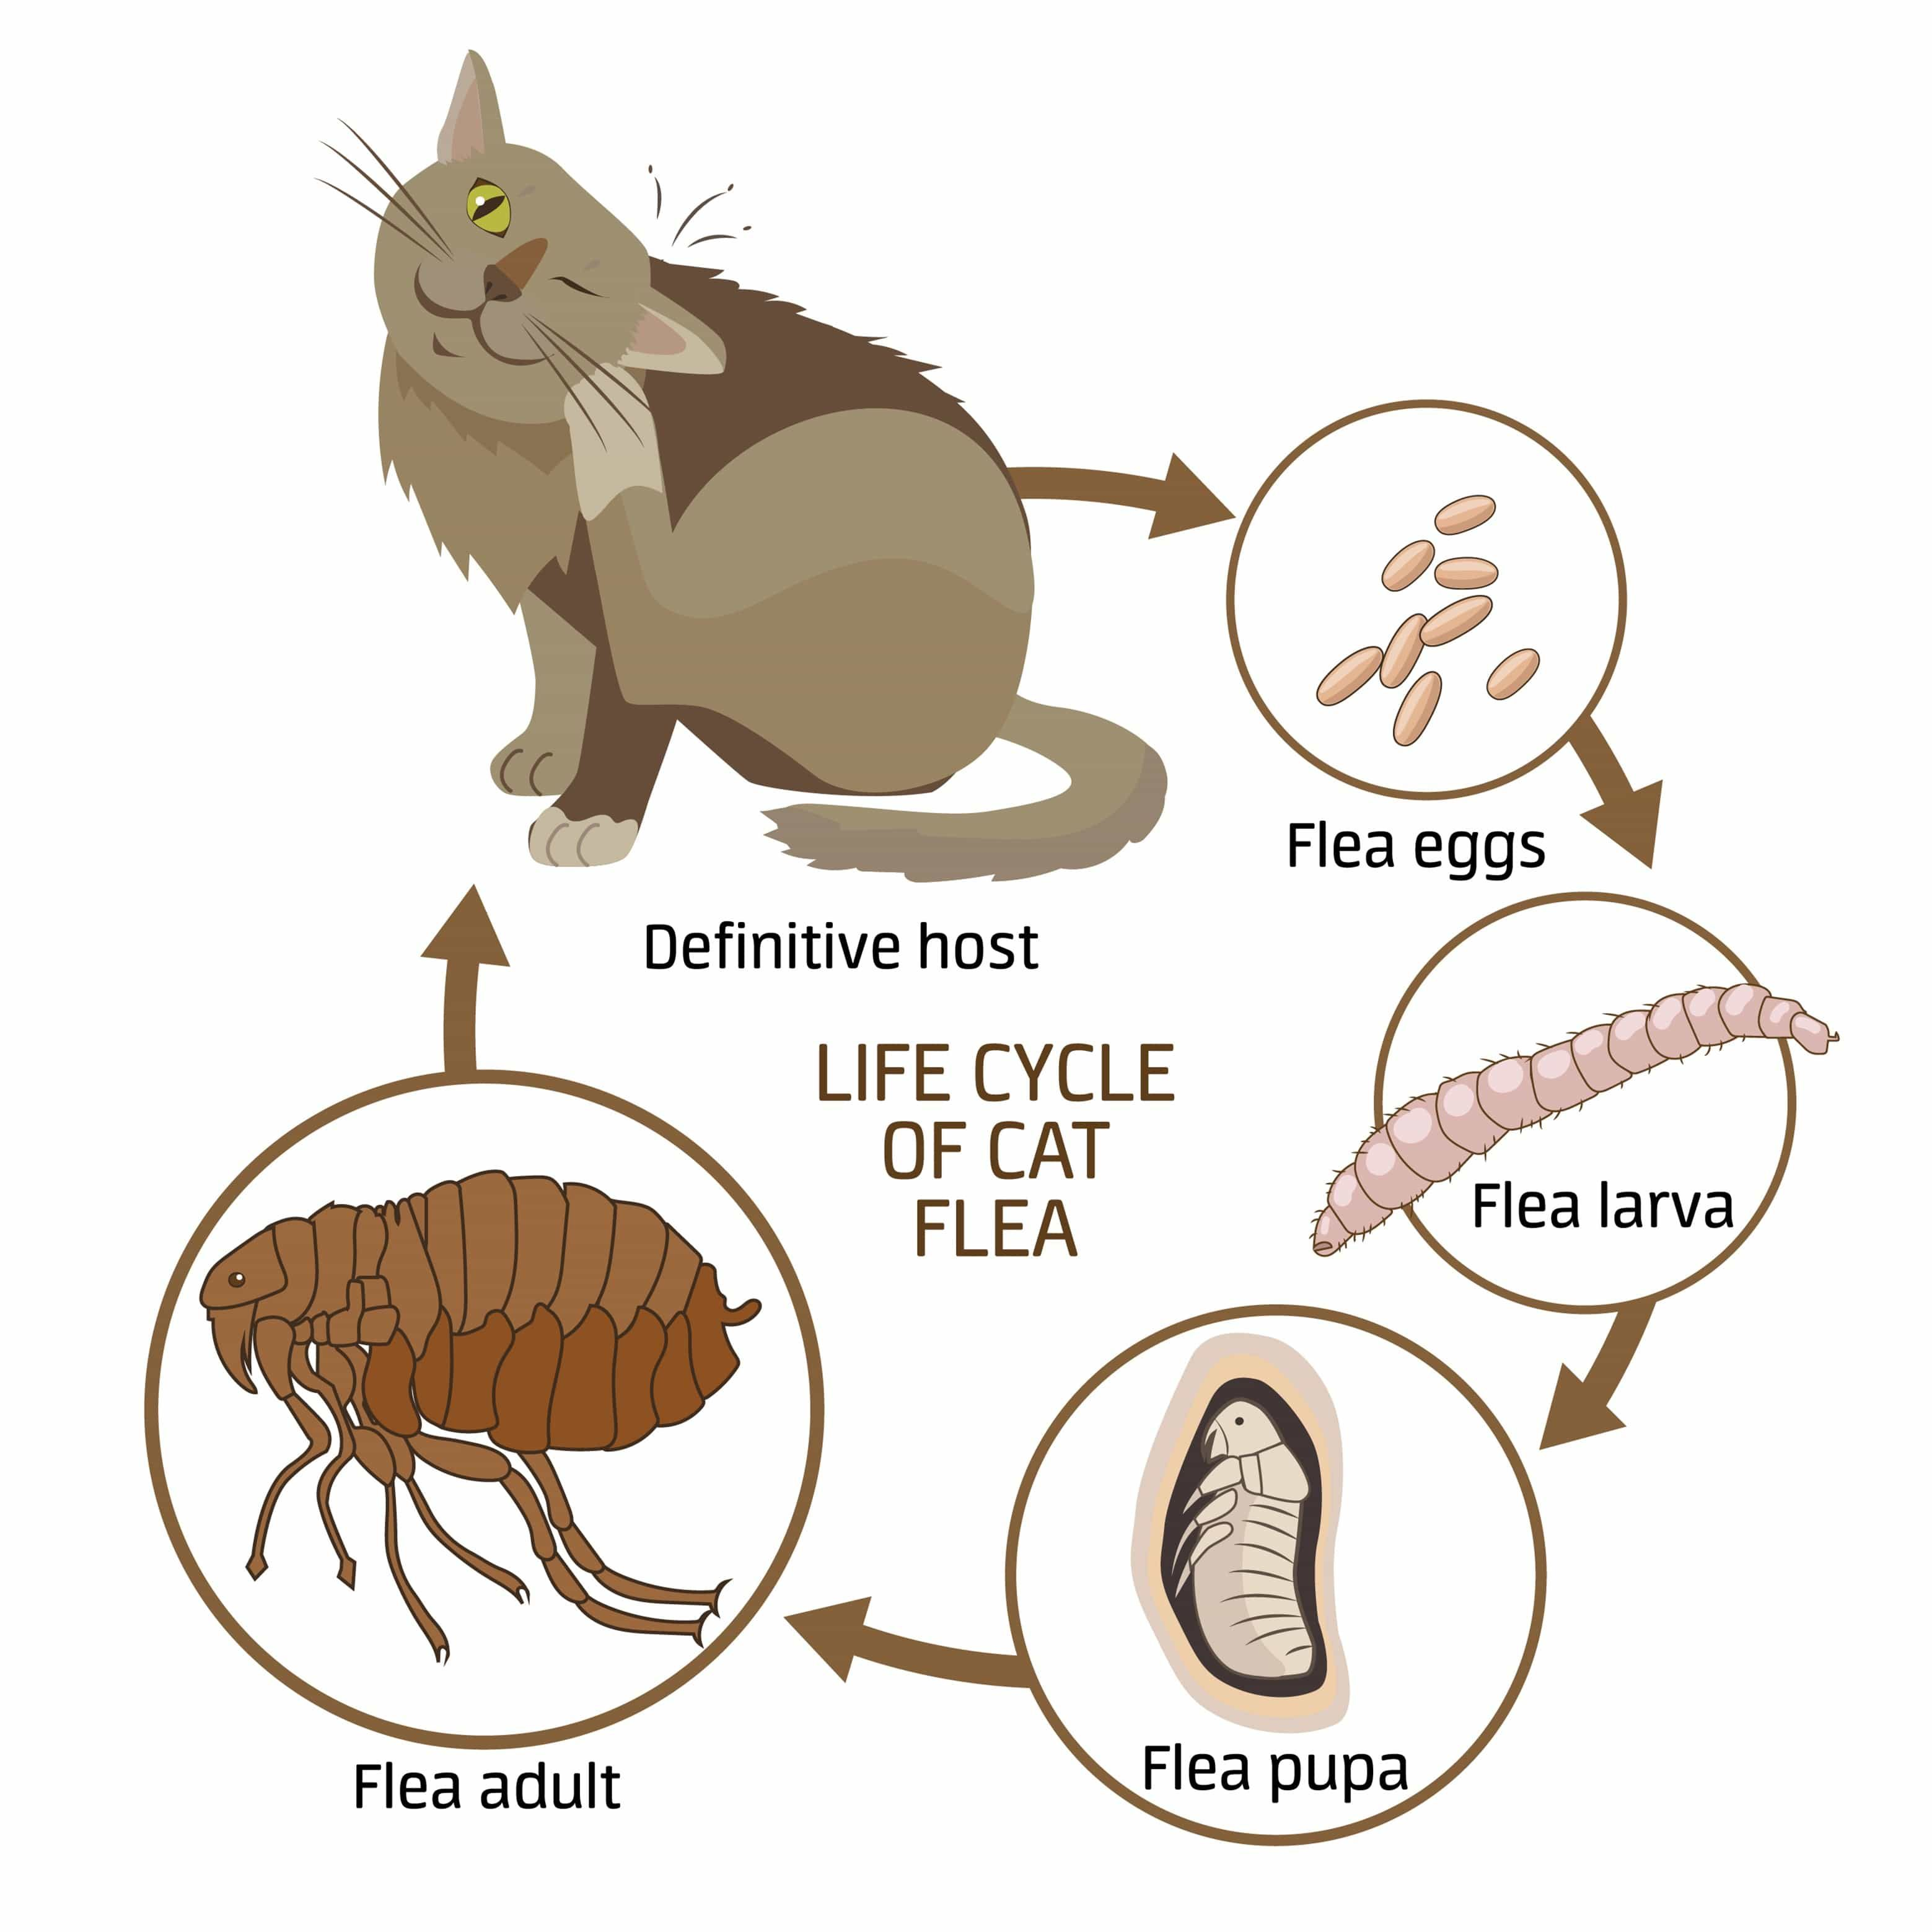 flea life cycle for cat Cat fleas, Cat fleas treatment